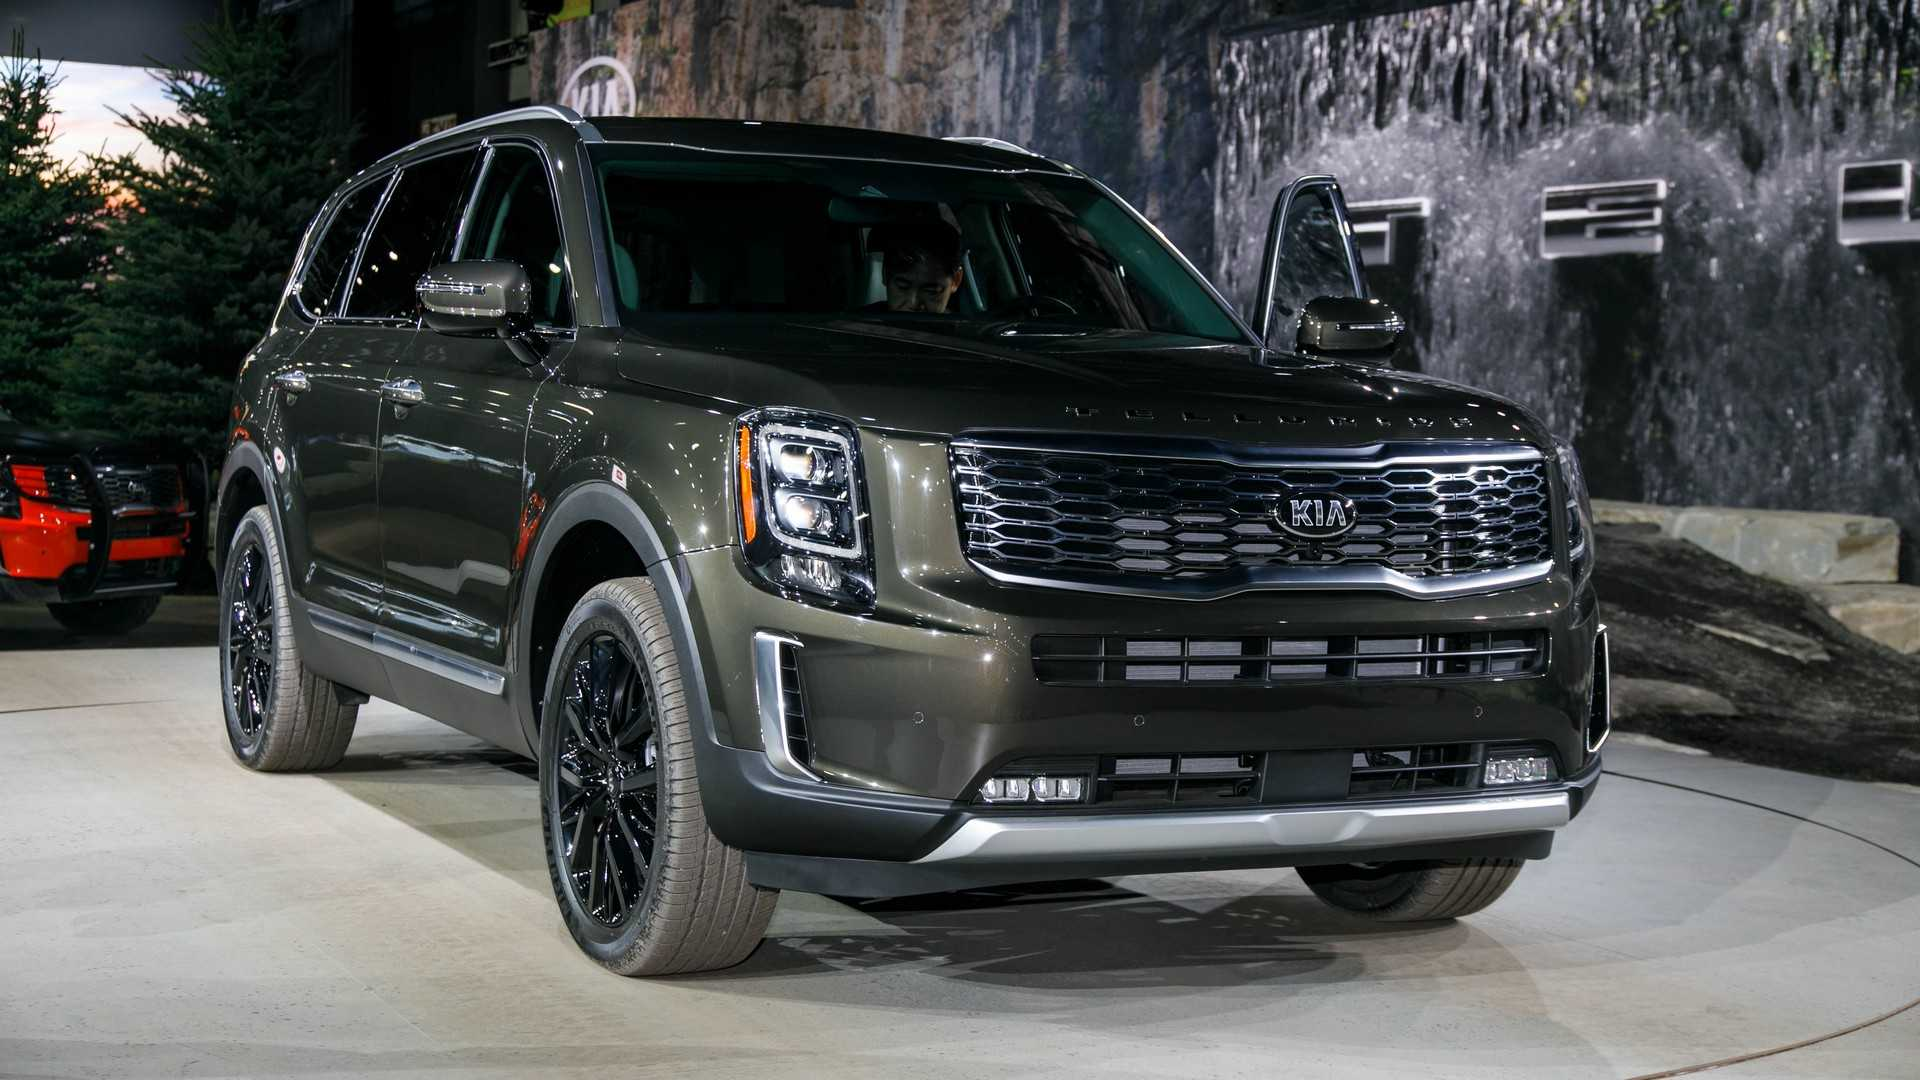 73 Great How Much Is The 2020 Kia Telluride History with How Much Is The 2020 Kia Telluride